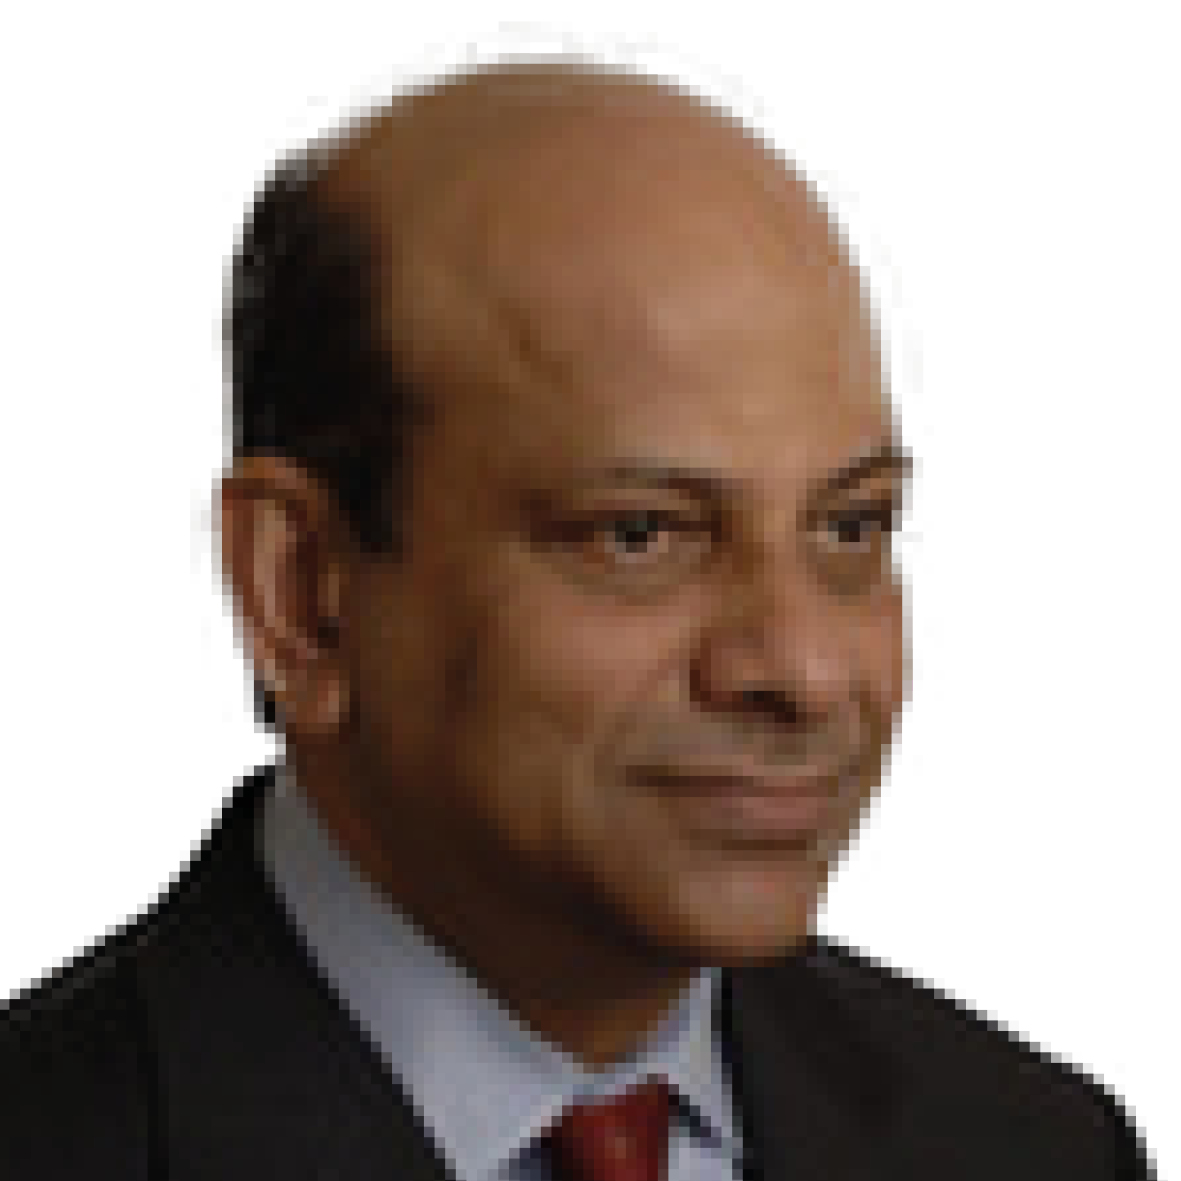 Vijay Govindarajan, Coxe Distinguished Professor, Tuck School of Business at Dartmouth, USA